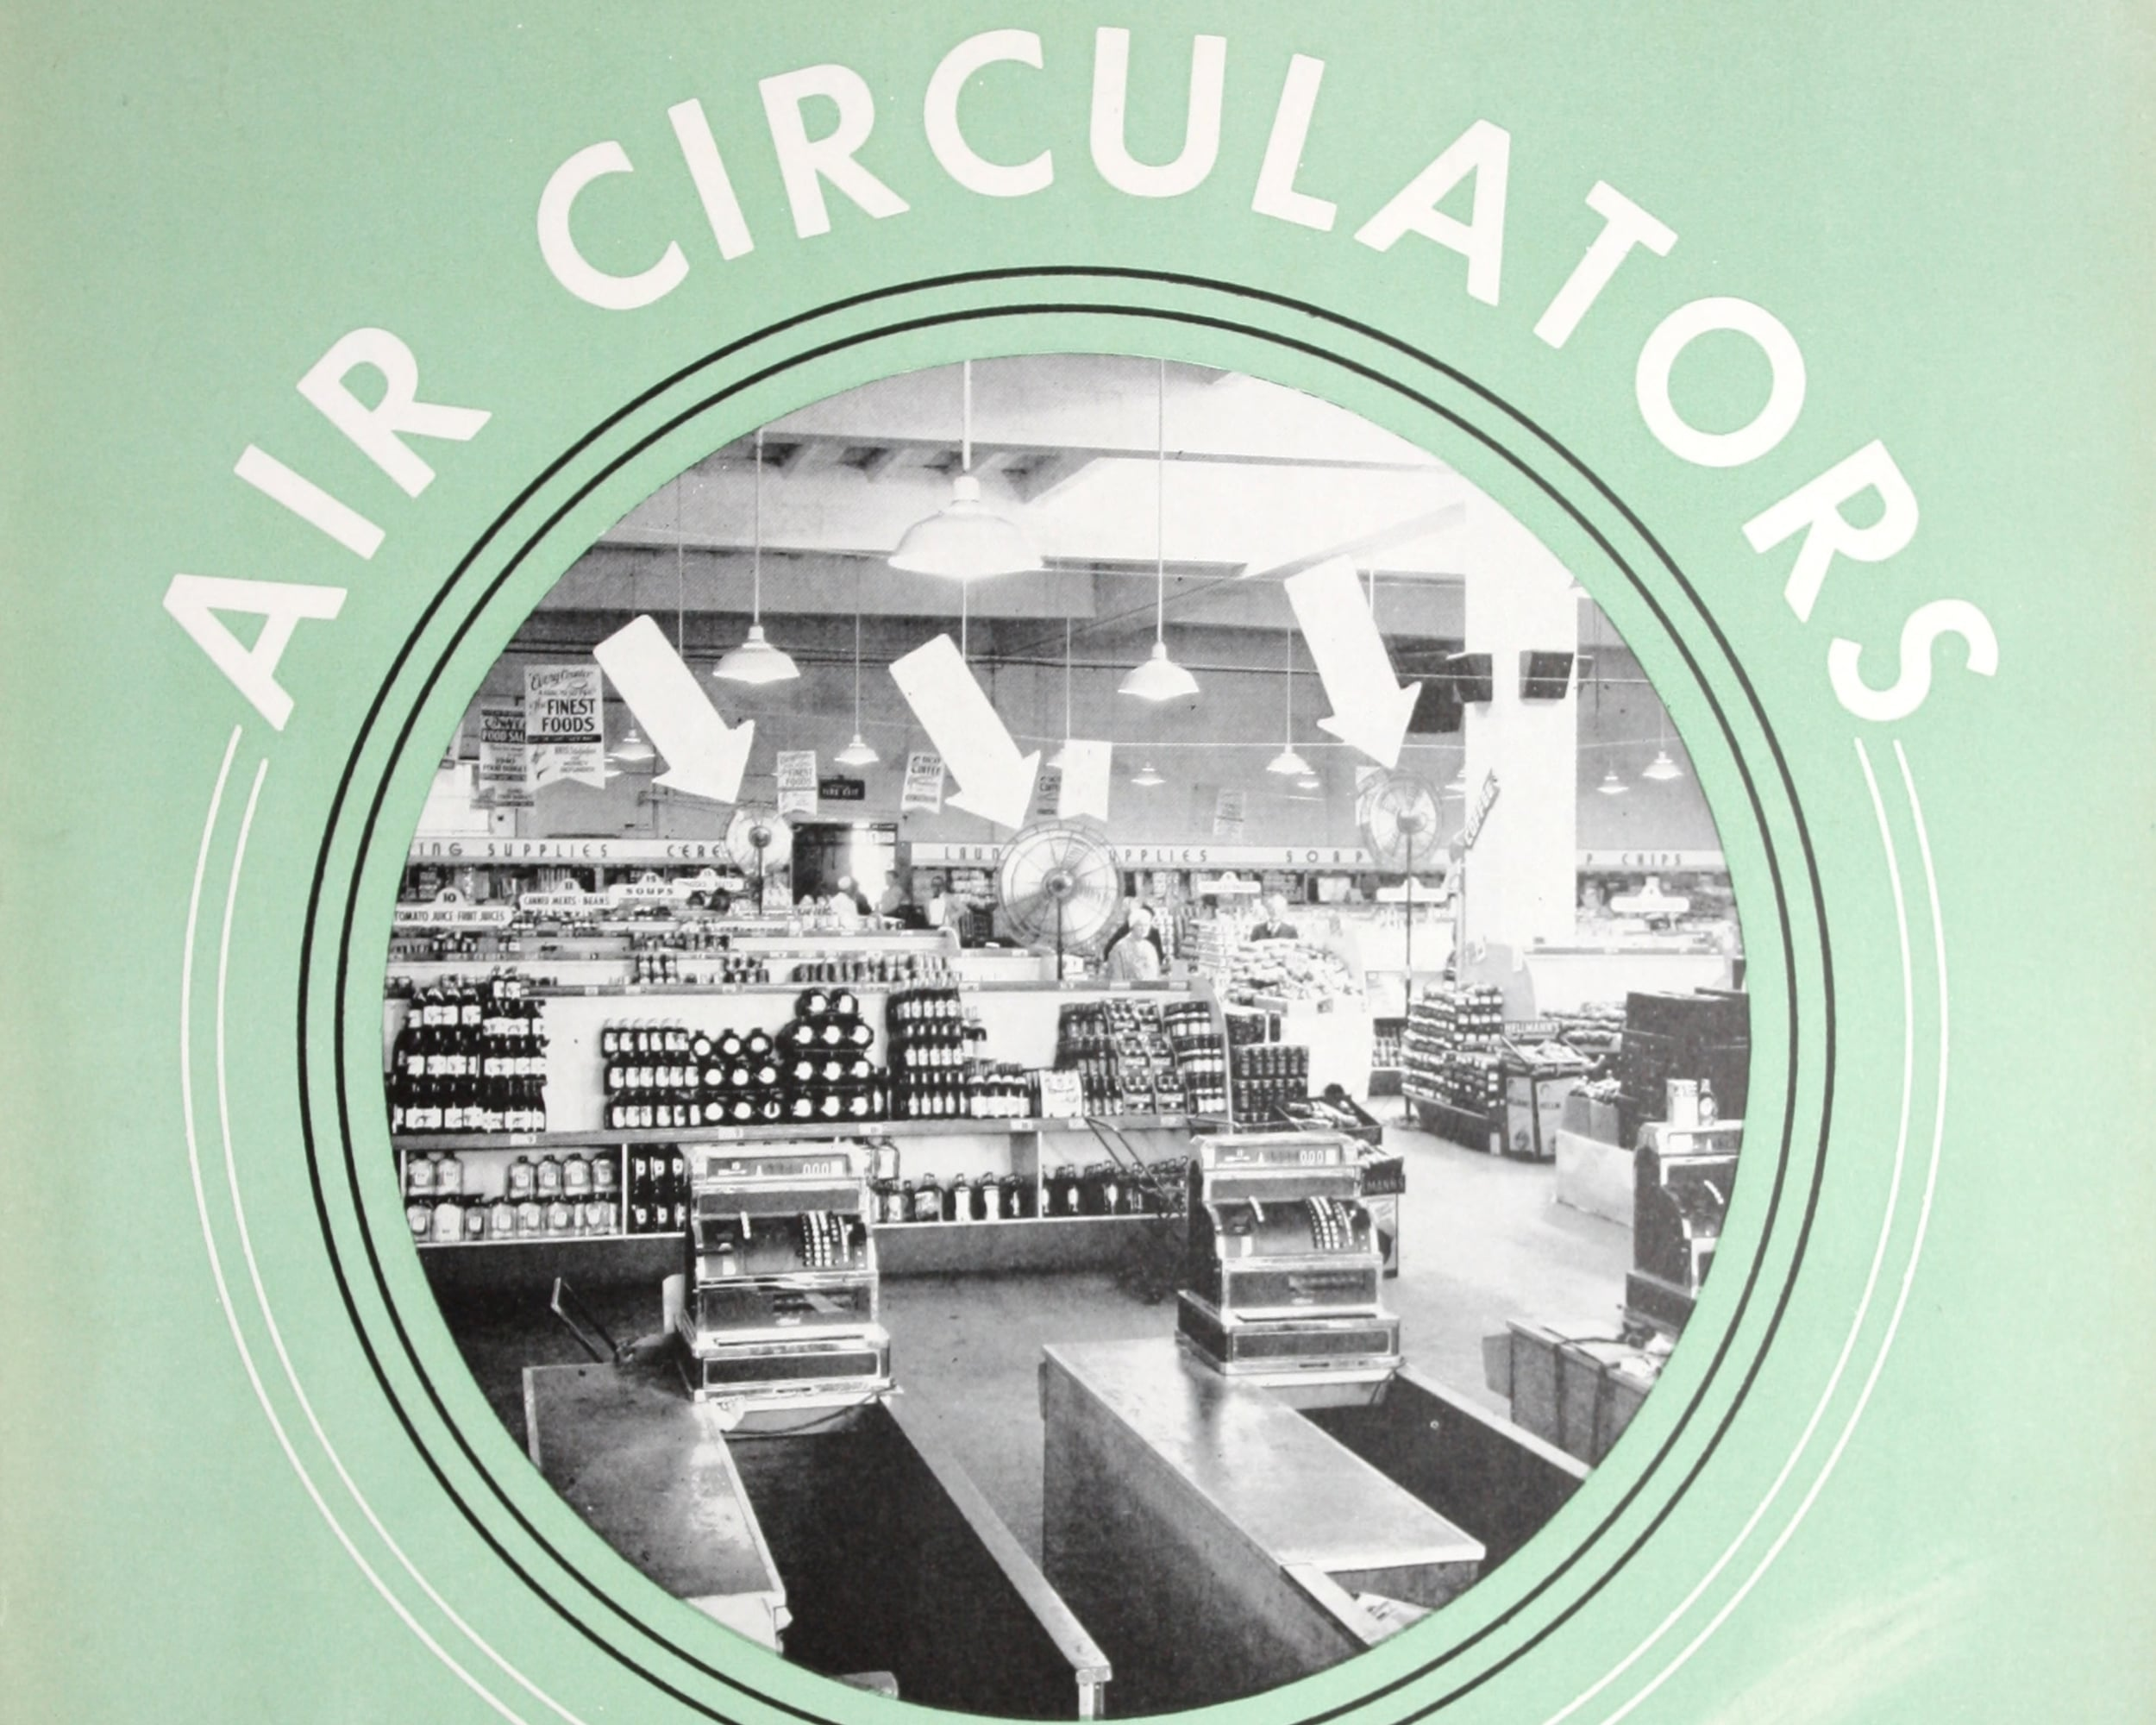 Air circulators. Emerson Electric Manufacturing Co.